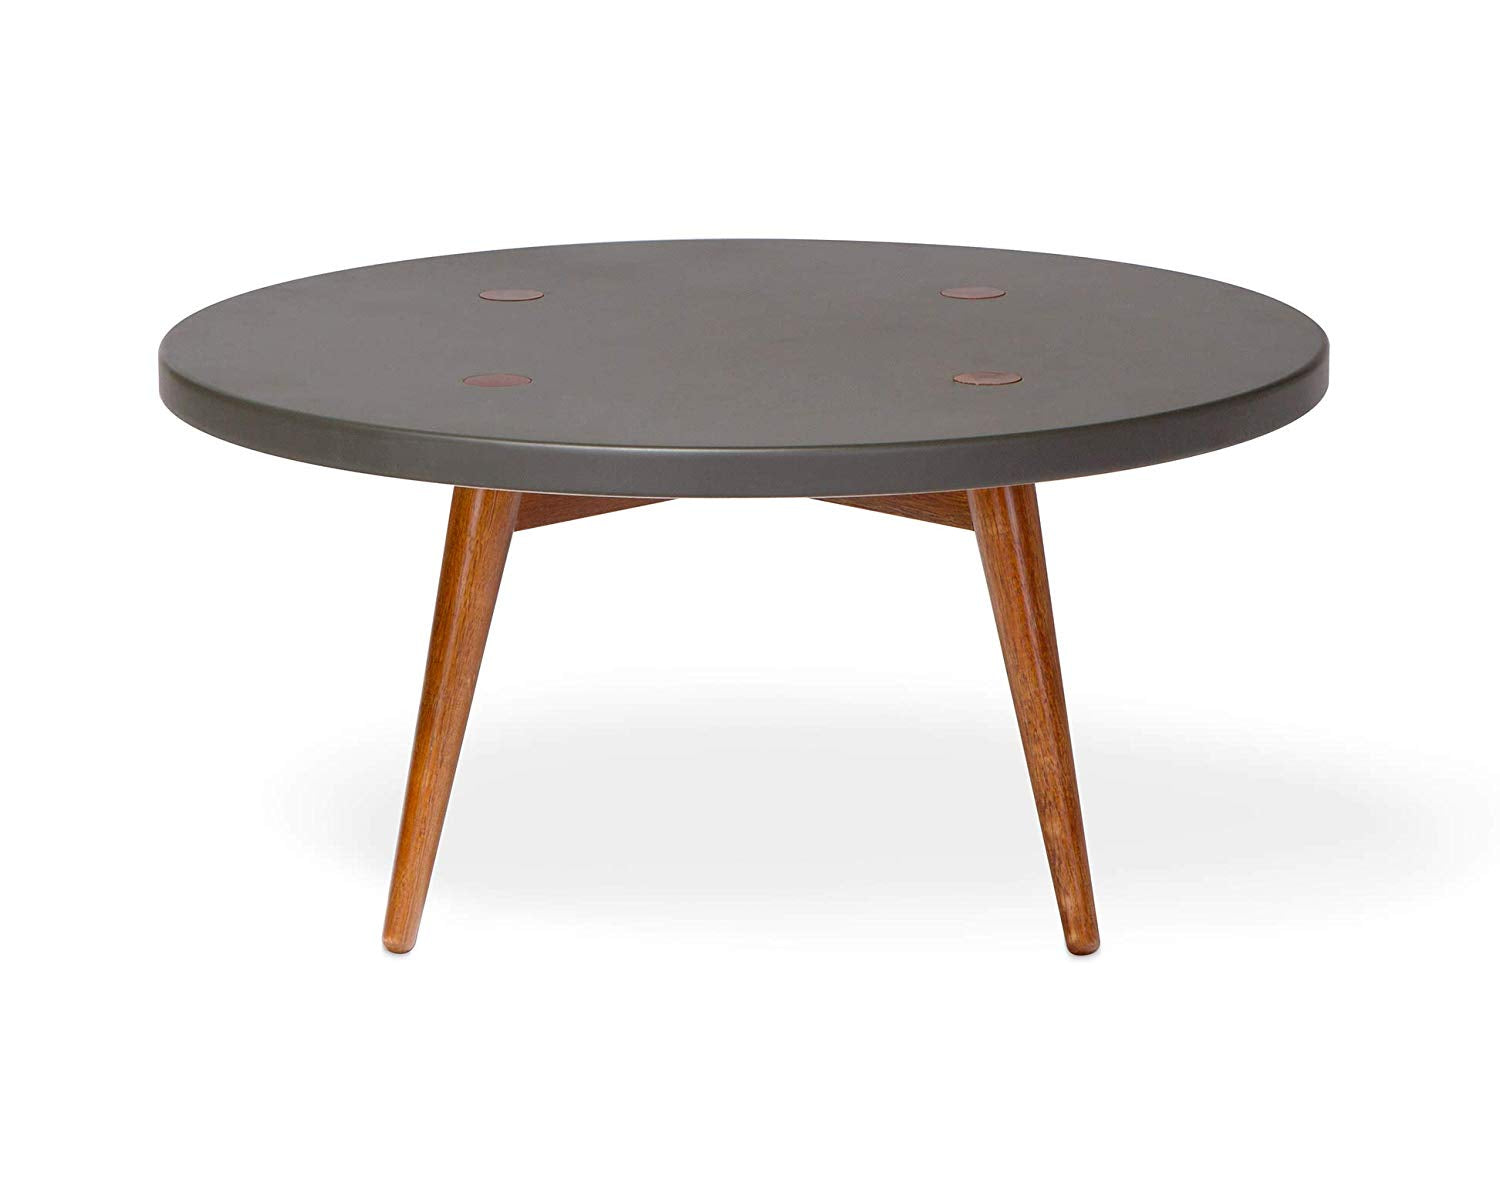 Memomad Biscoito Fino Coffee Table (Graphite) - memomad.store